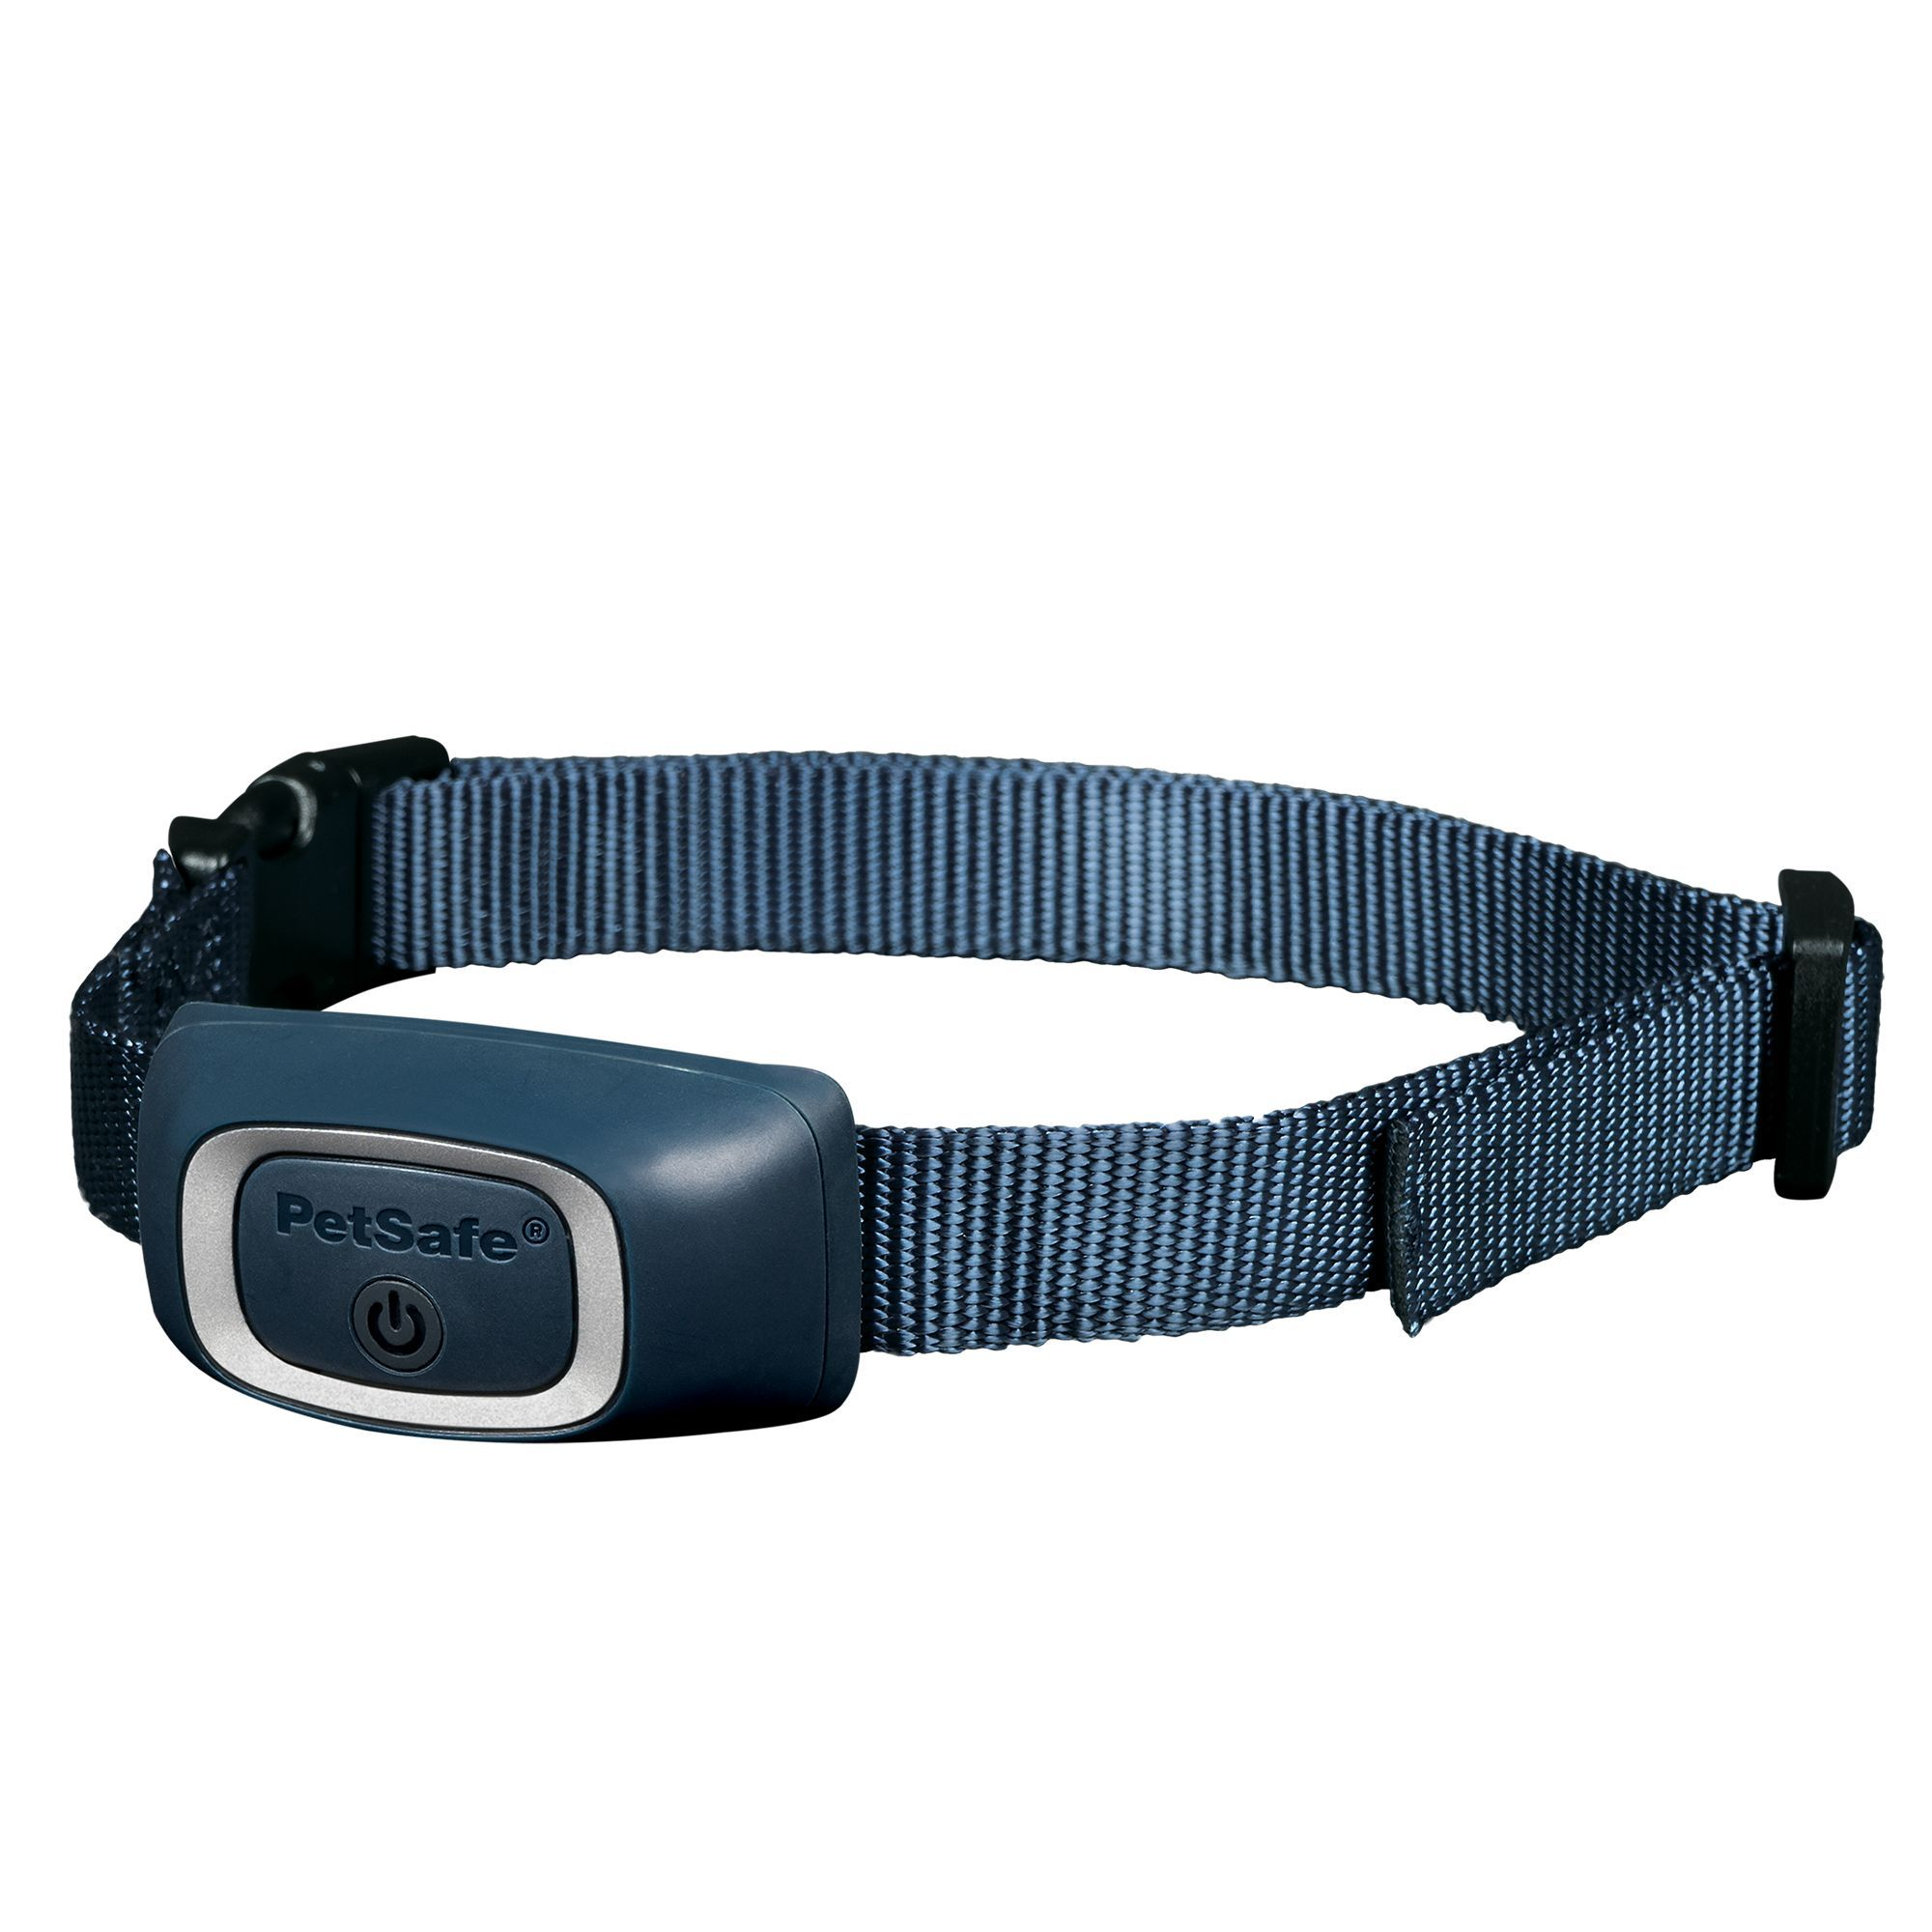 Petsafe Smart Dog Training Collar Blue Training Collar Dog